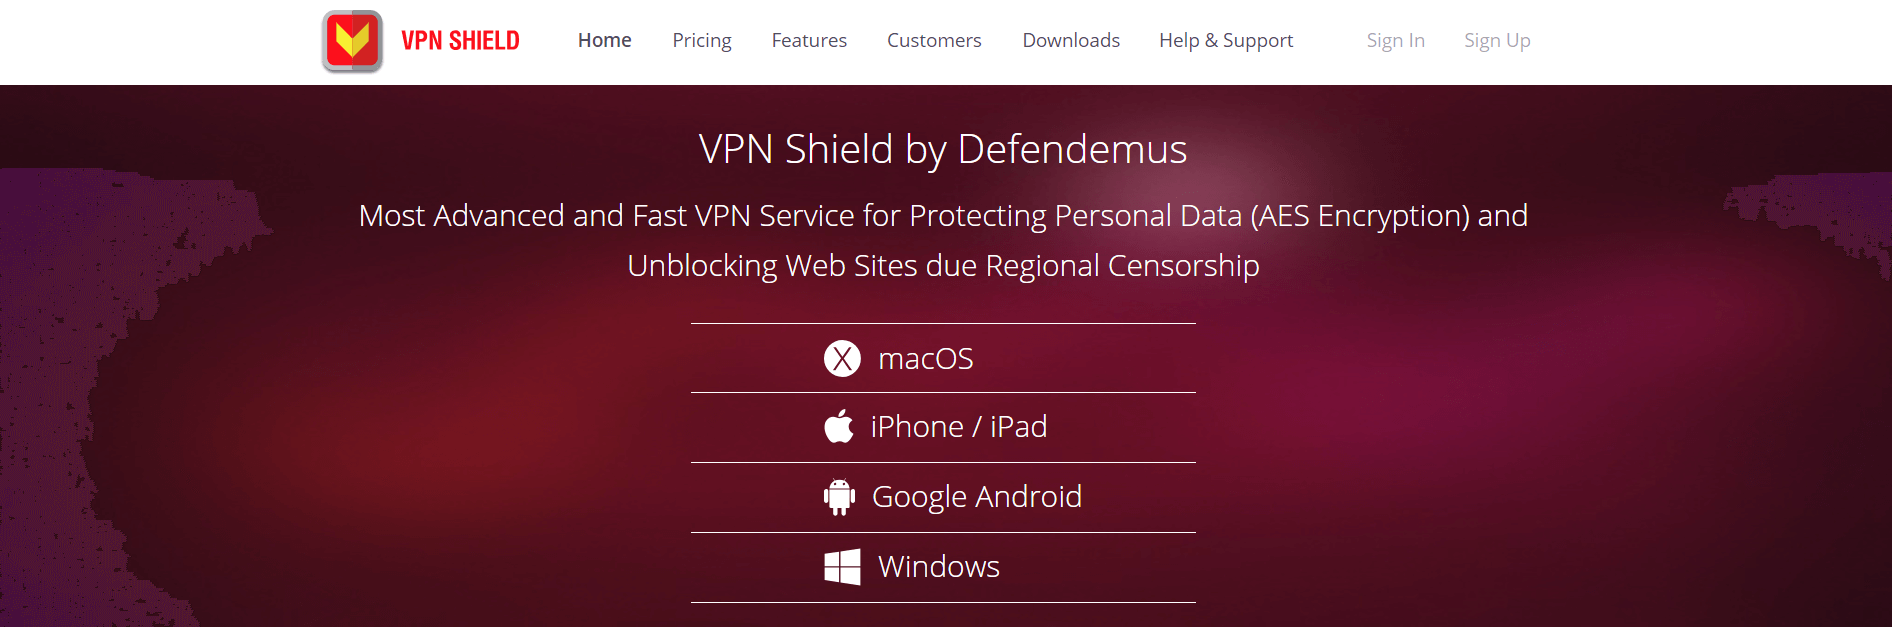 VPN Shield review